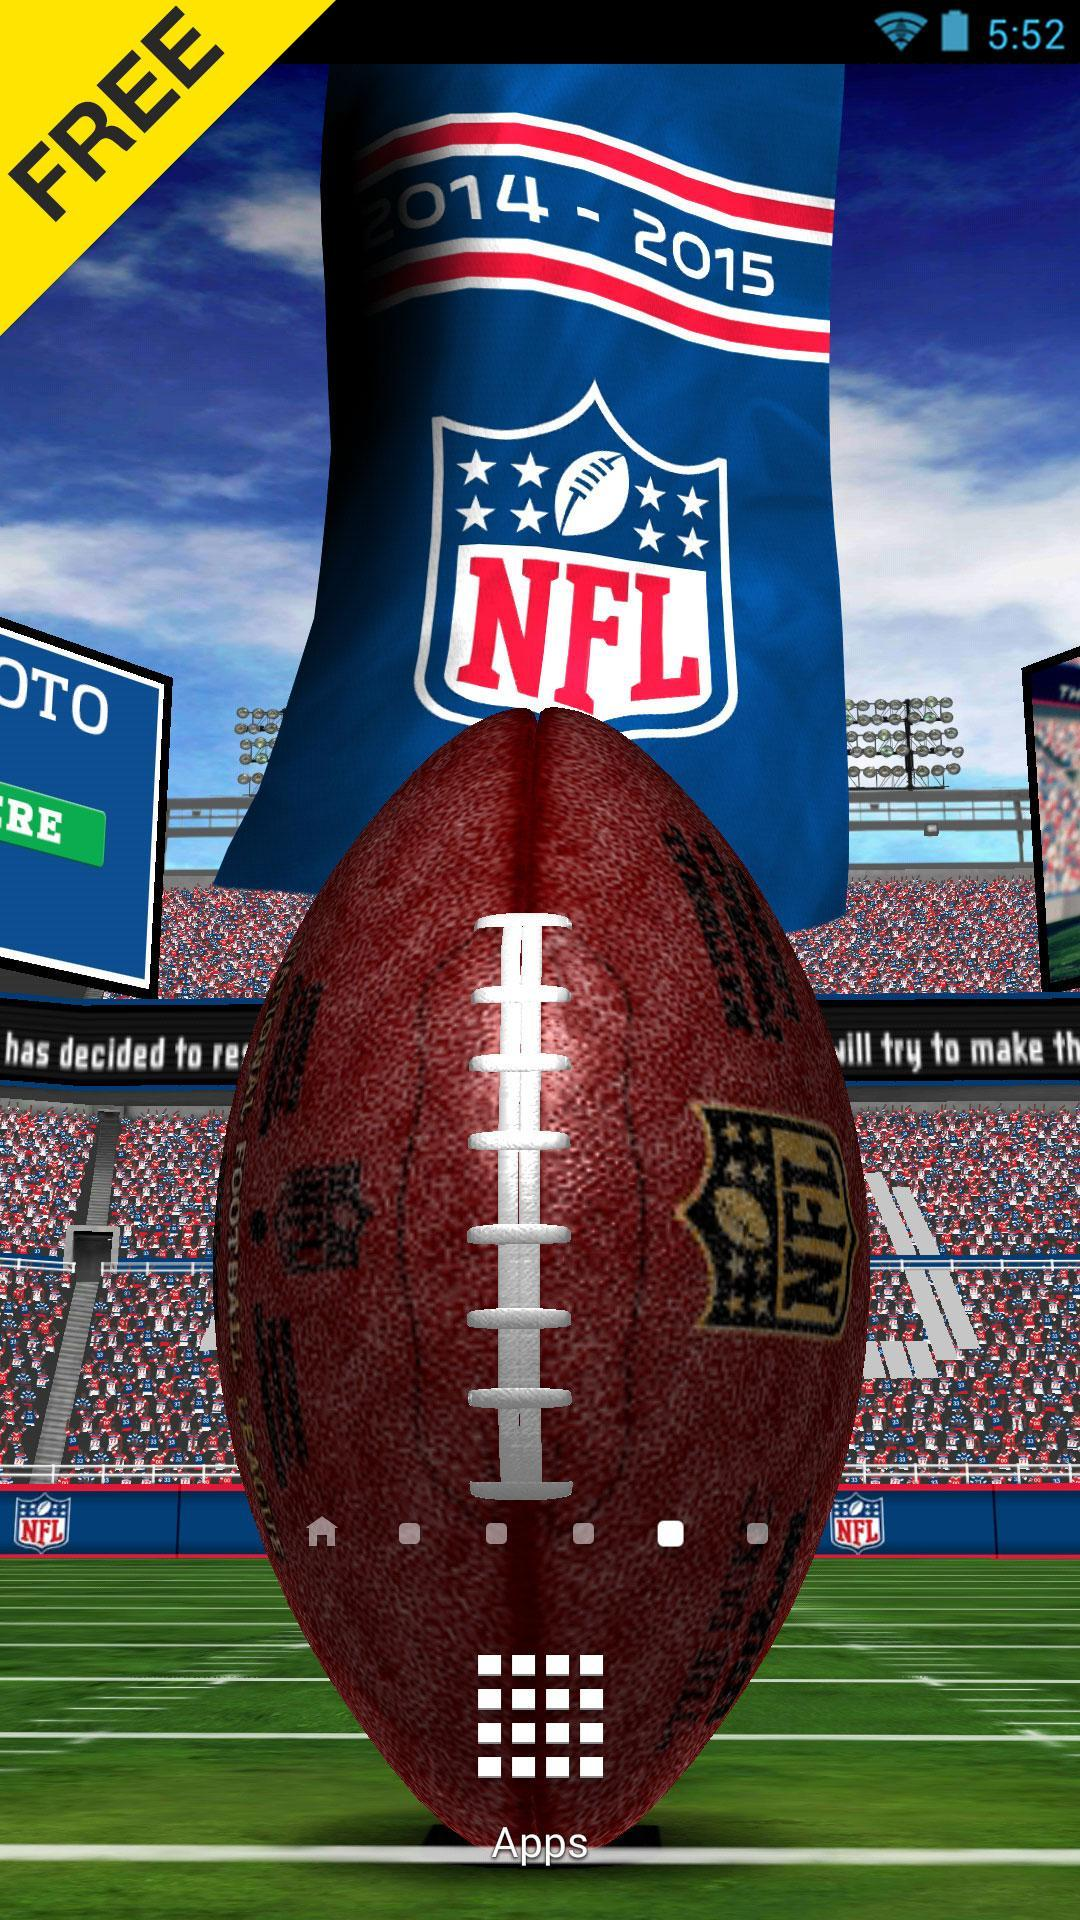 Nfl 2015 Live Wallpaper For Android Apk Download